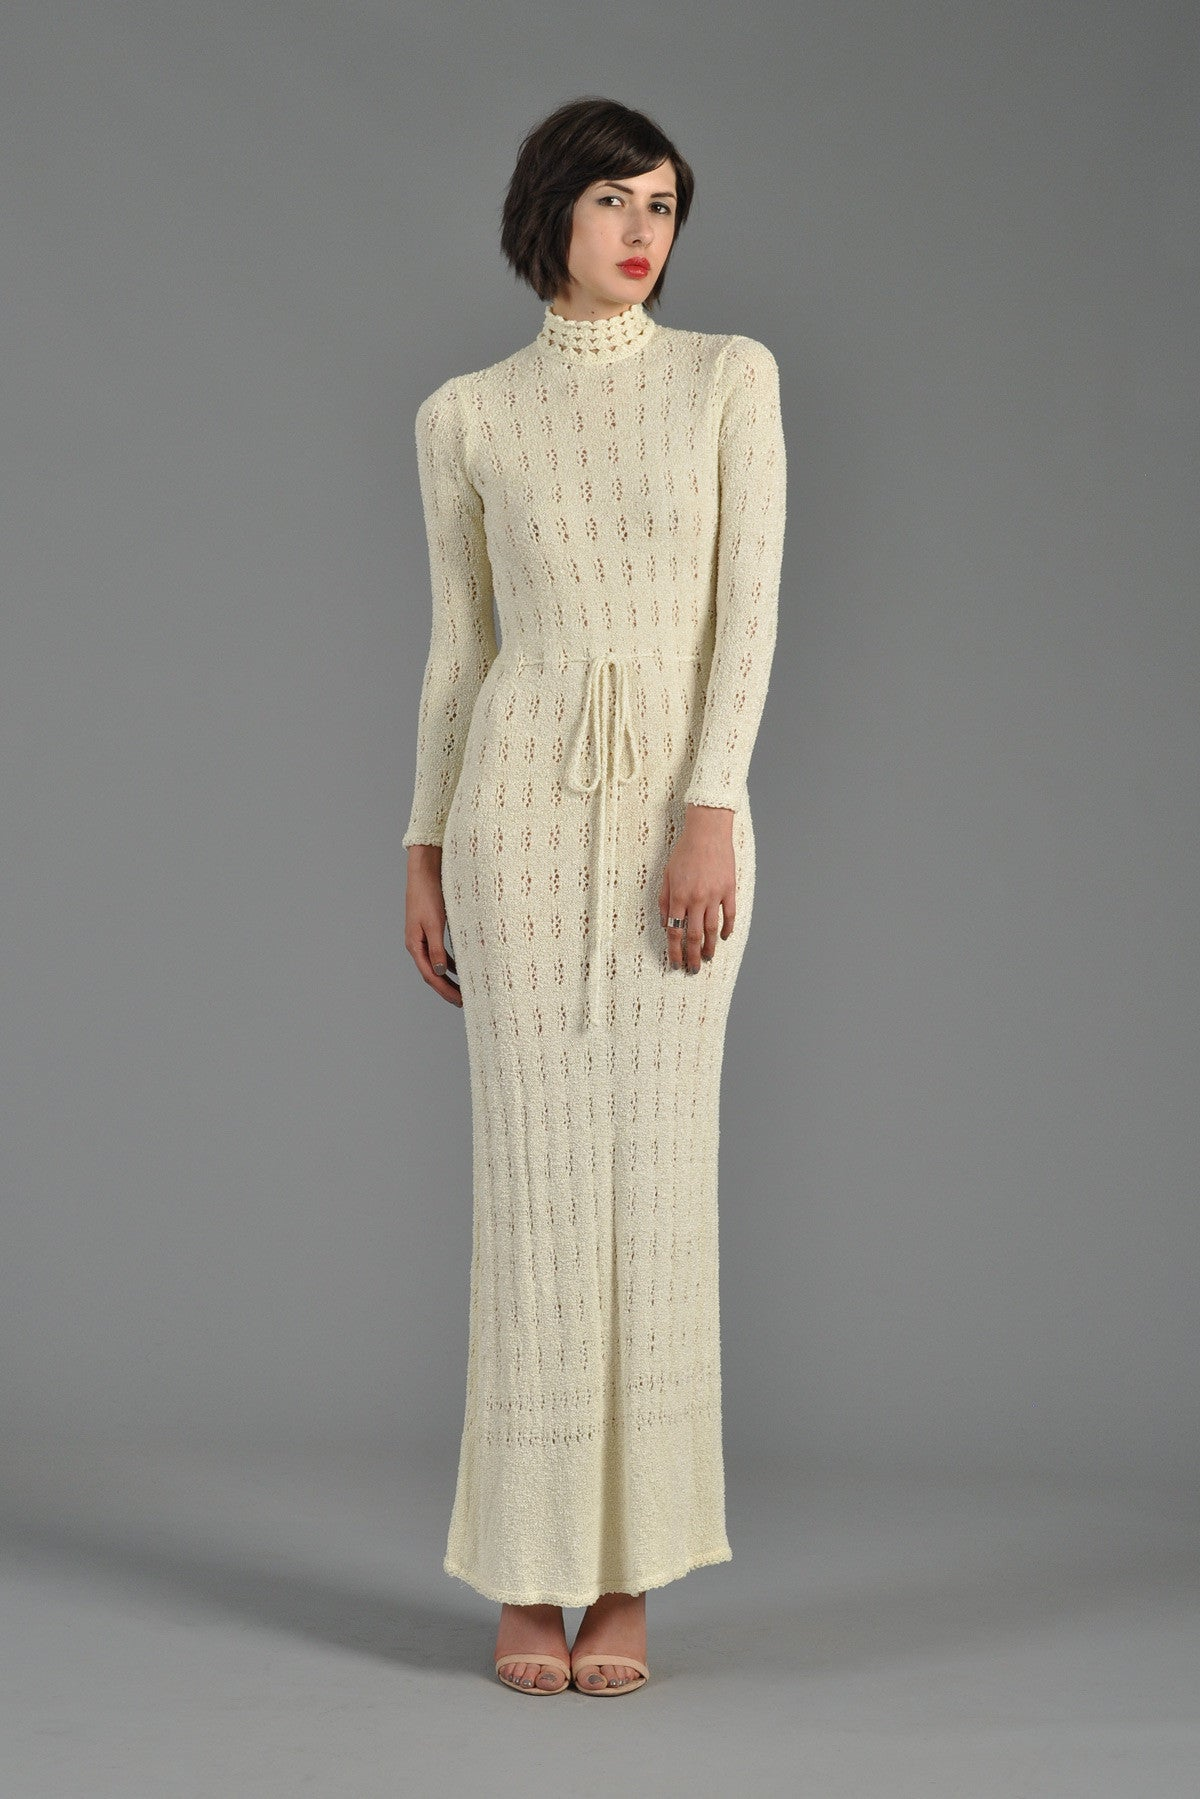 1970s Open Weave Knit Maxi Dress With High Neck Bustown